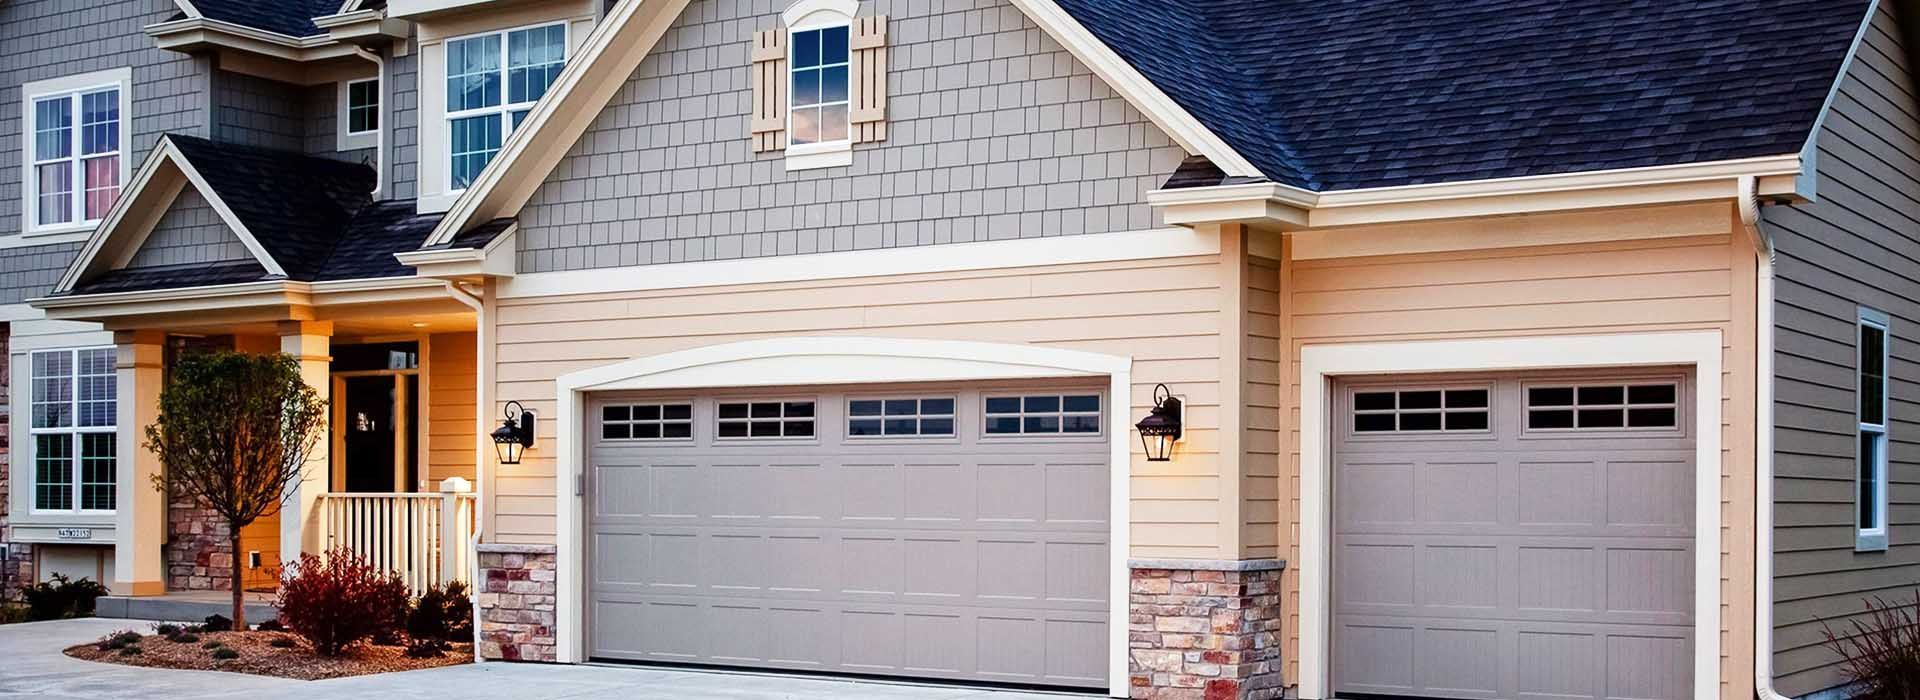 When To Call A Professional For Garage Door Installation In Okc And Oklahoma City Call Garage Door Systems Inc I Garage Doors Garage Door Repair Door Repair